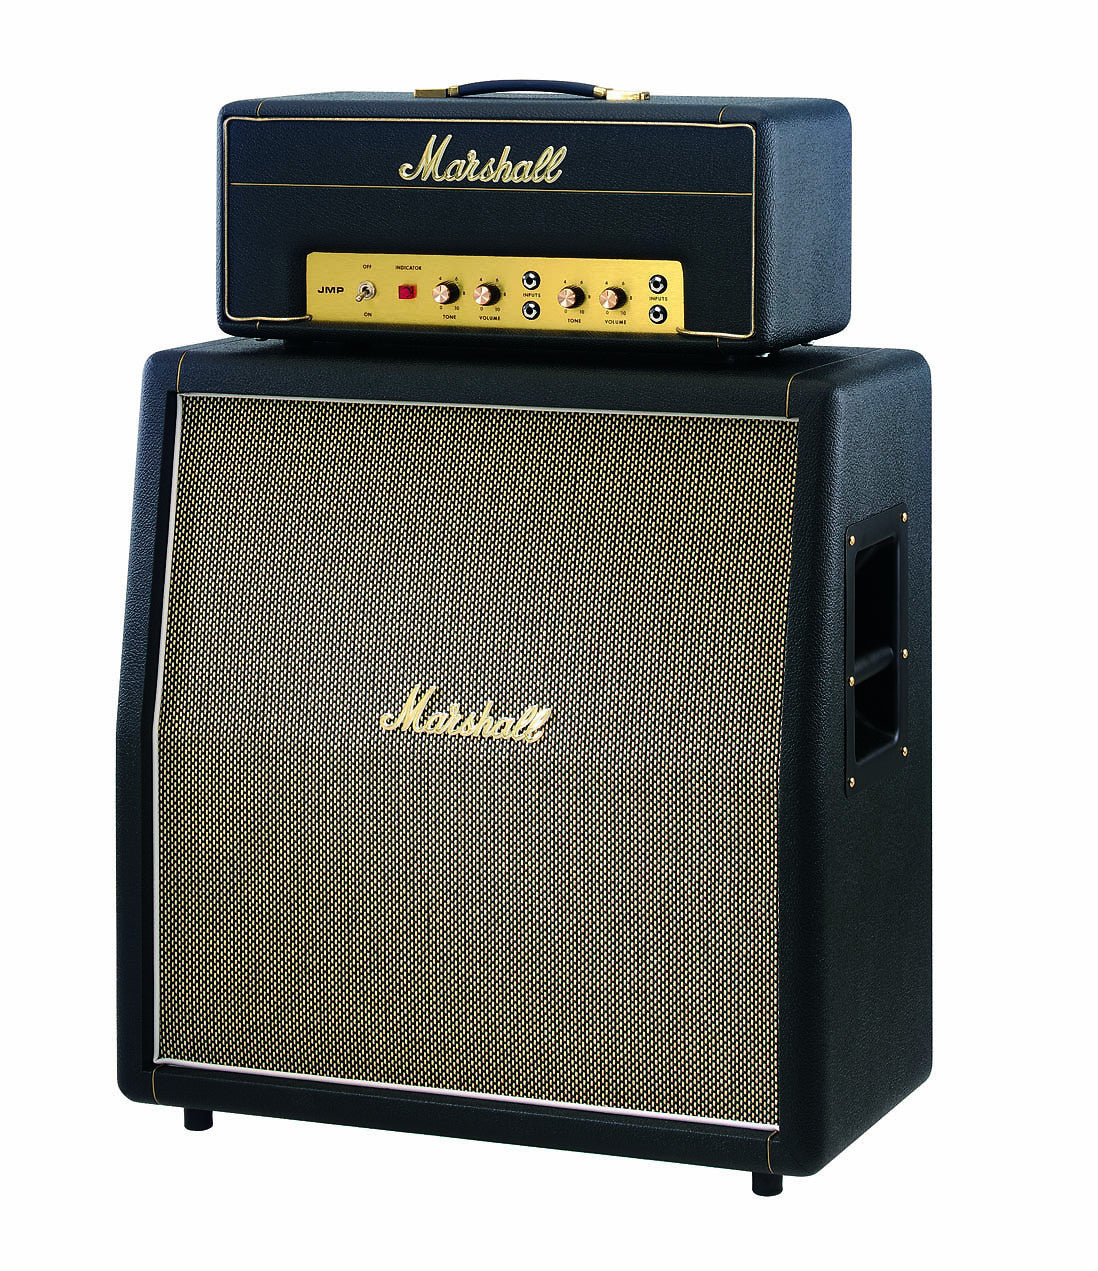 Shop online for Marshall JMP 2061X/2061CX Handwired 18 Watt 1/2 Stack Amplifier today.  Now available for purchase from Midlothian Music of Orland Park, Illinois, USA